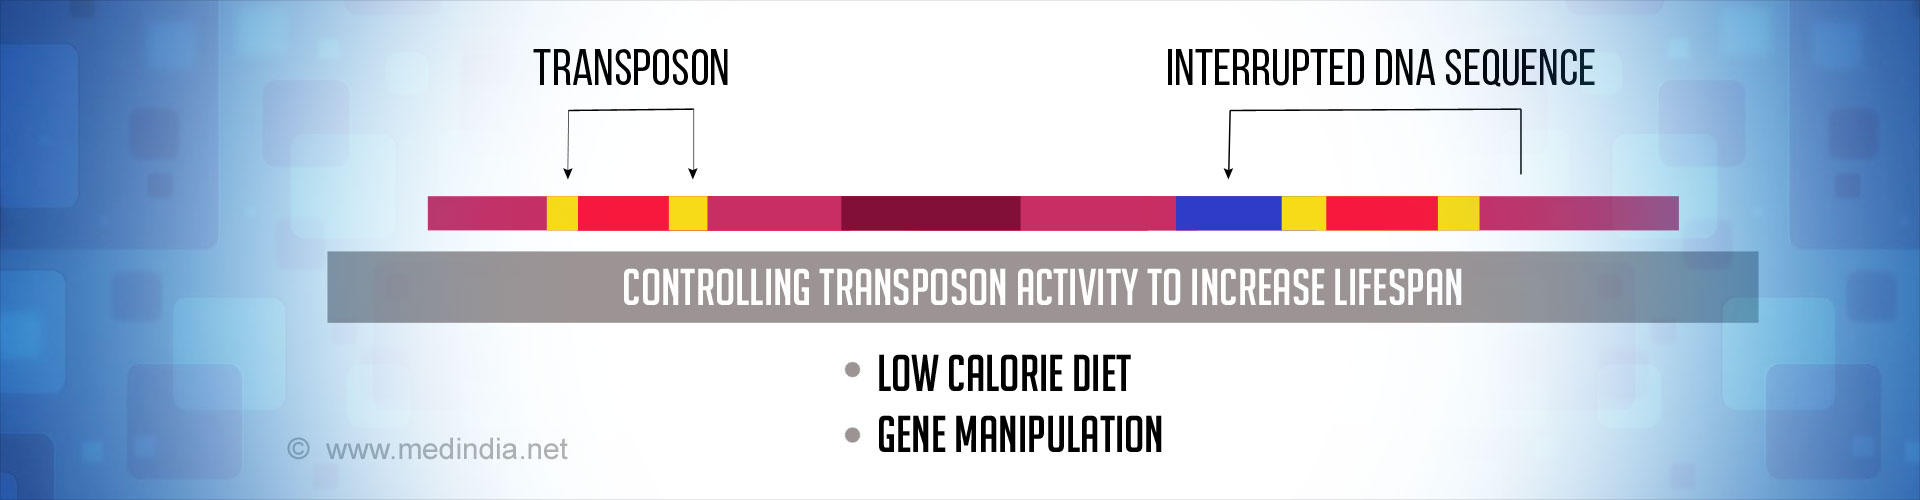 Watch What You Eat - Calorie Control Could Increase Lifespan by Restricting Rogue Transposons